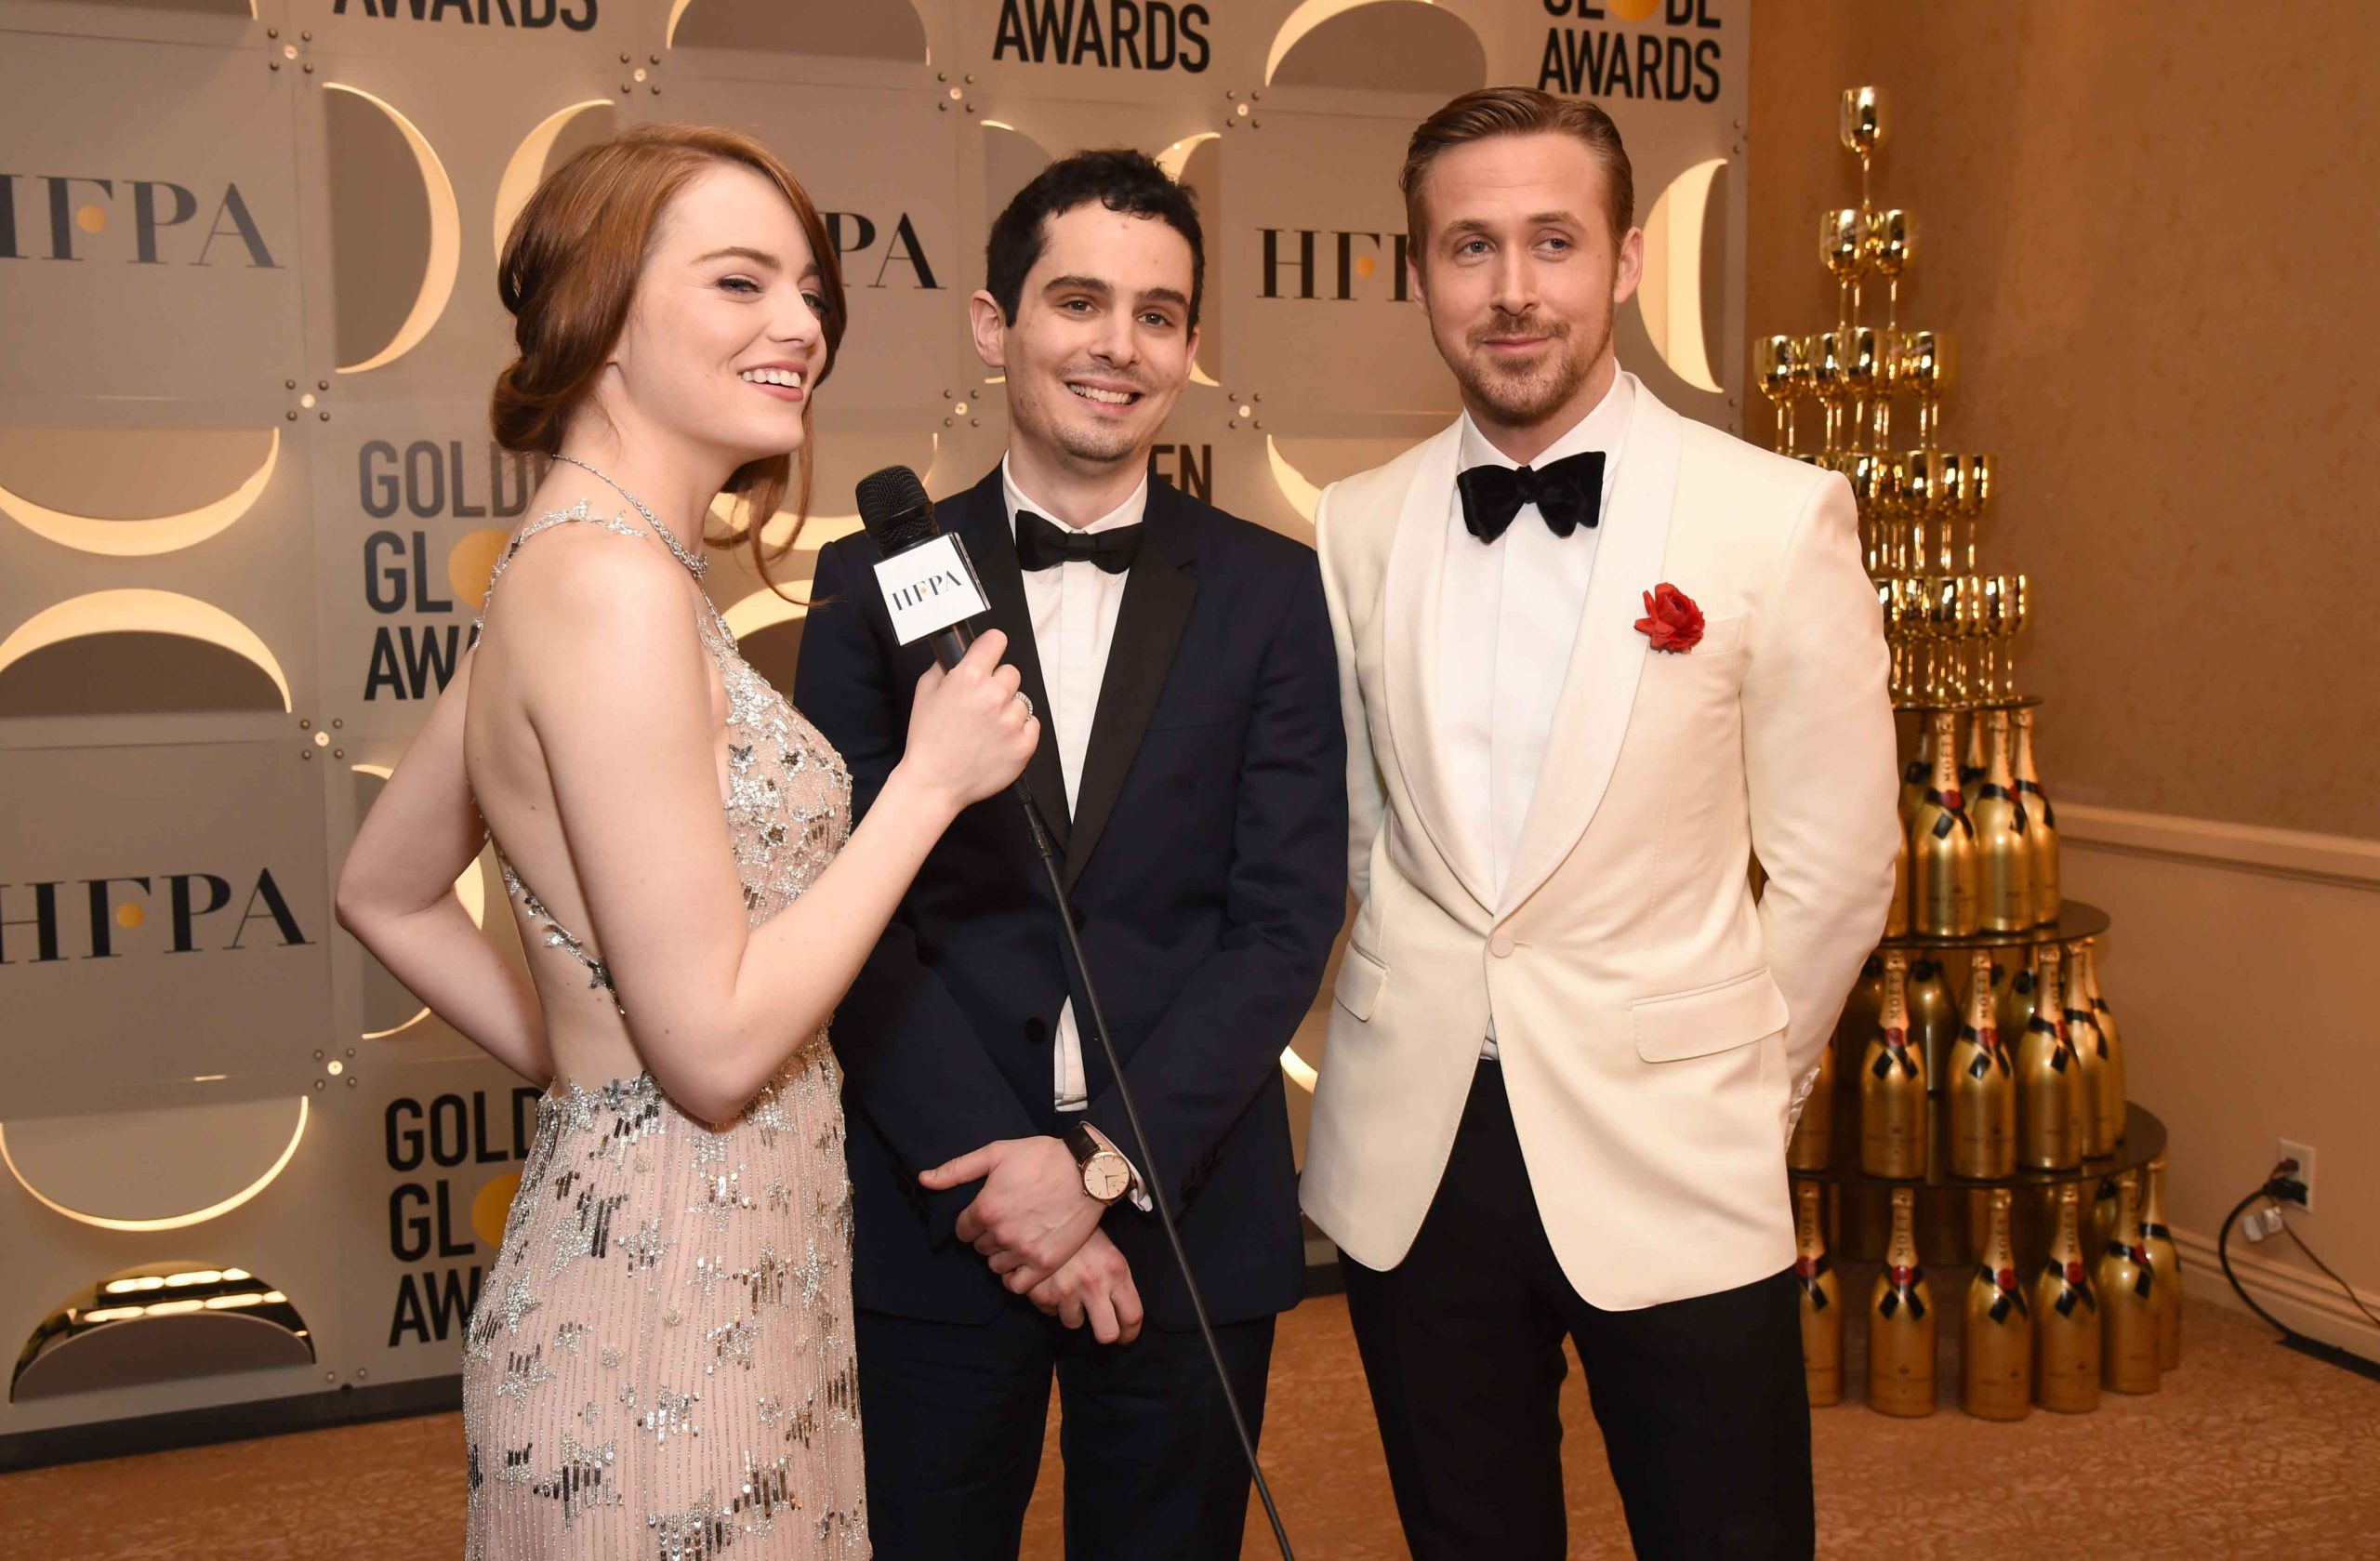 emma-stone-damien-chazelle-and-ryan-gosling-during-the-74th-annual-golden-globe-awards